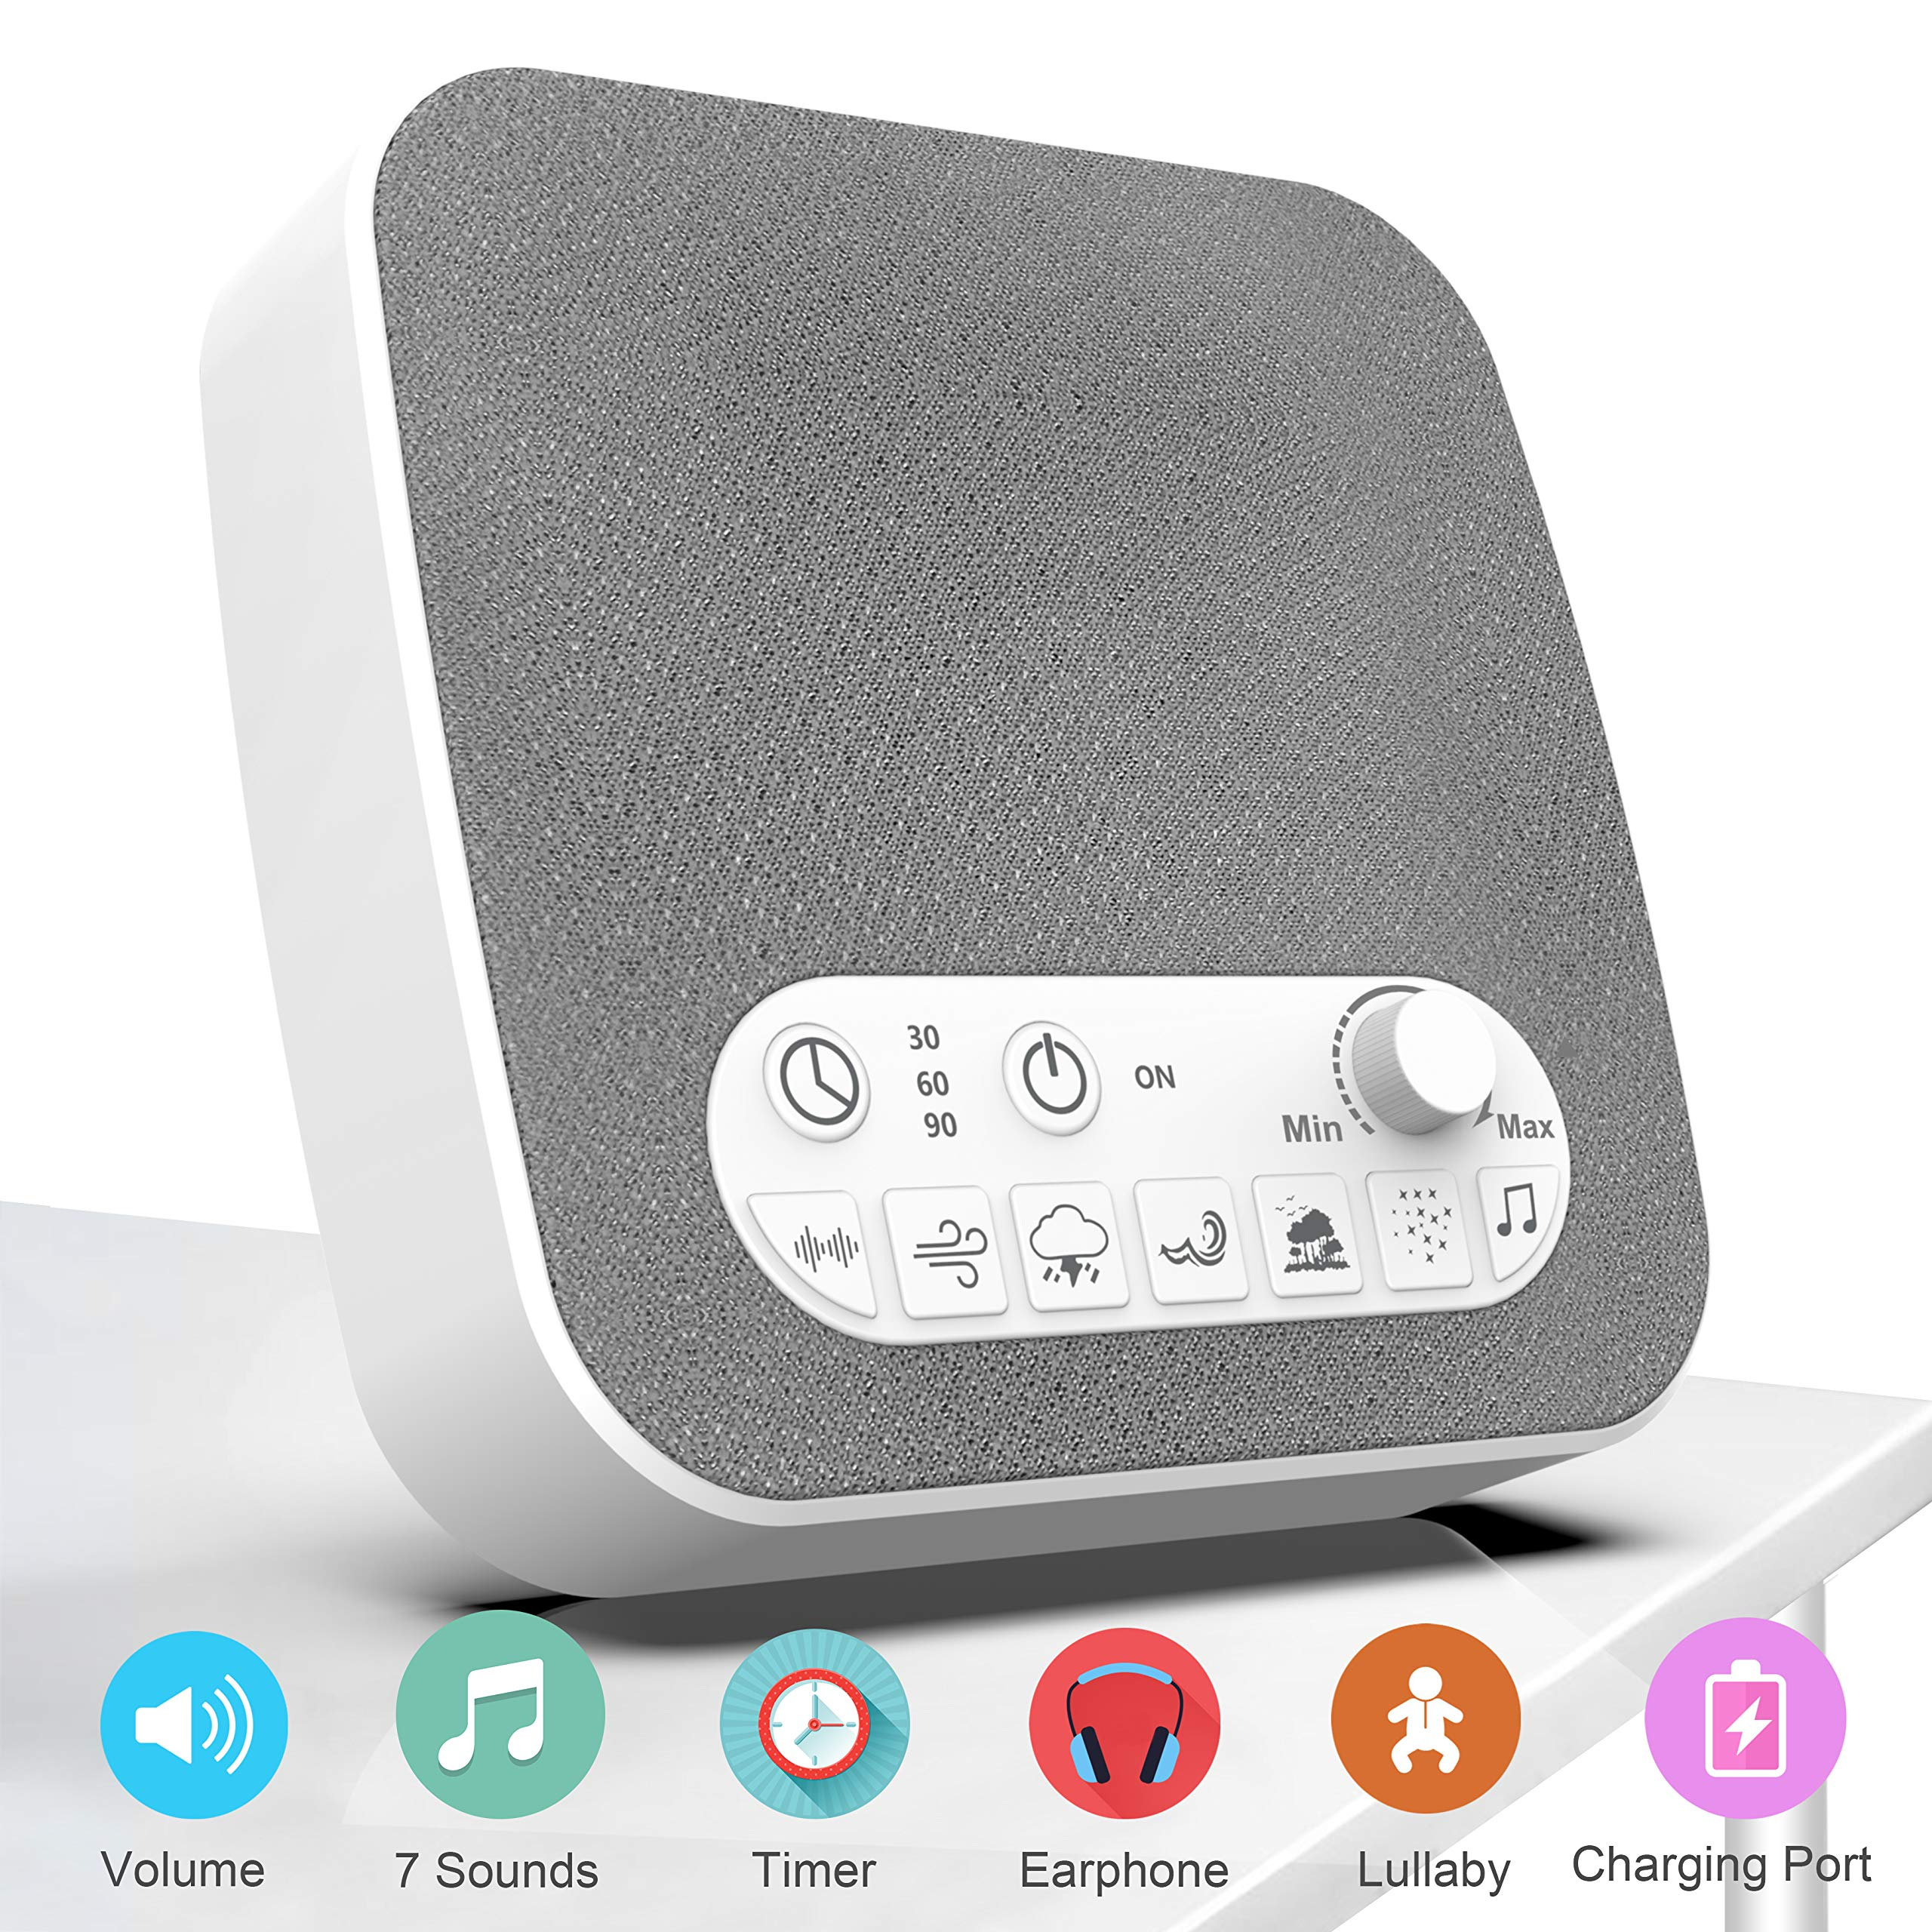 BESTHING White Noise Machine for Sleeping, Sleep Sound Machine with Non-Looping Soothing Sounds, USB Output Charger, Adjustable Volume, Headphone Jack and Auto-Off Timer, Portable Sound Therapy